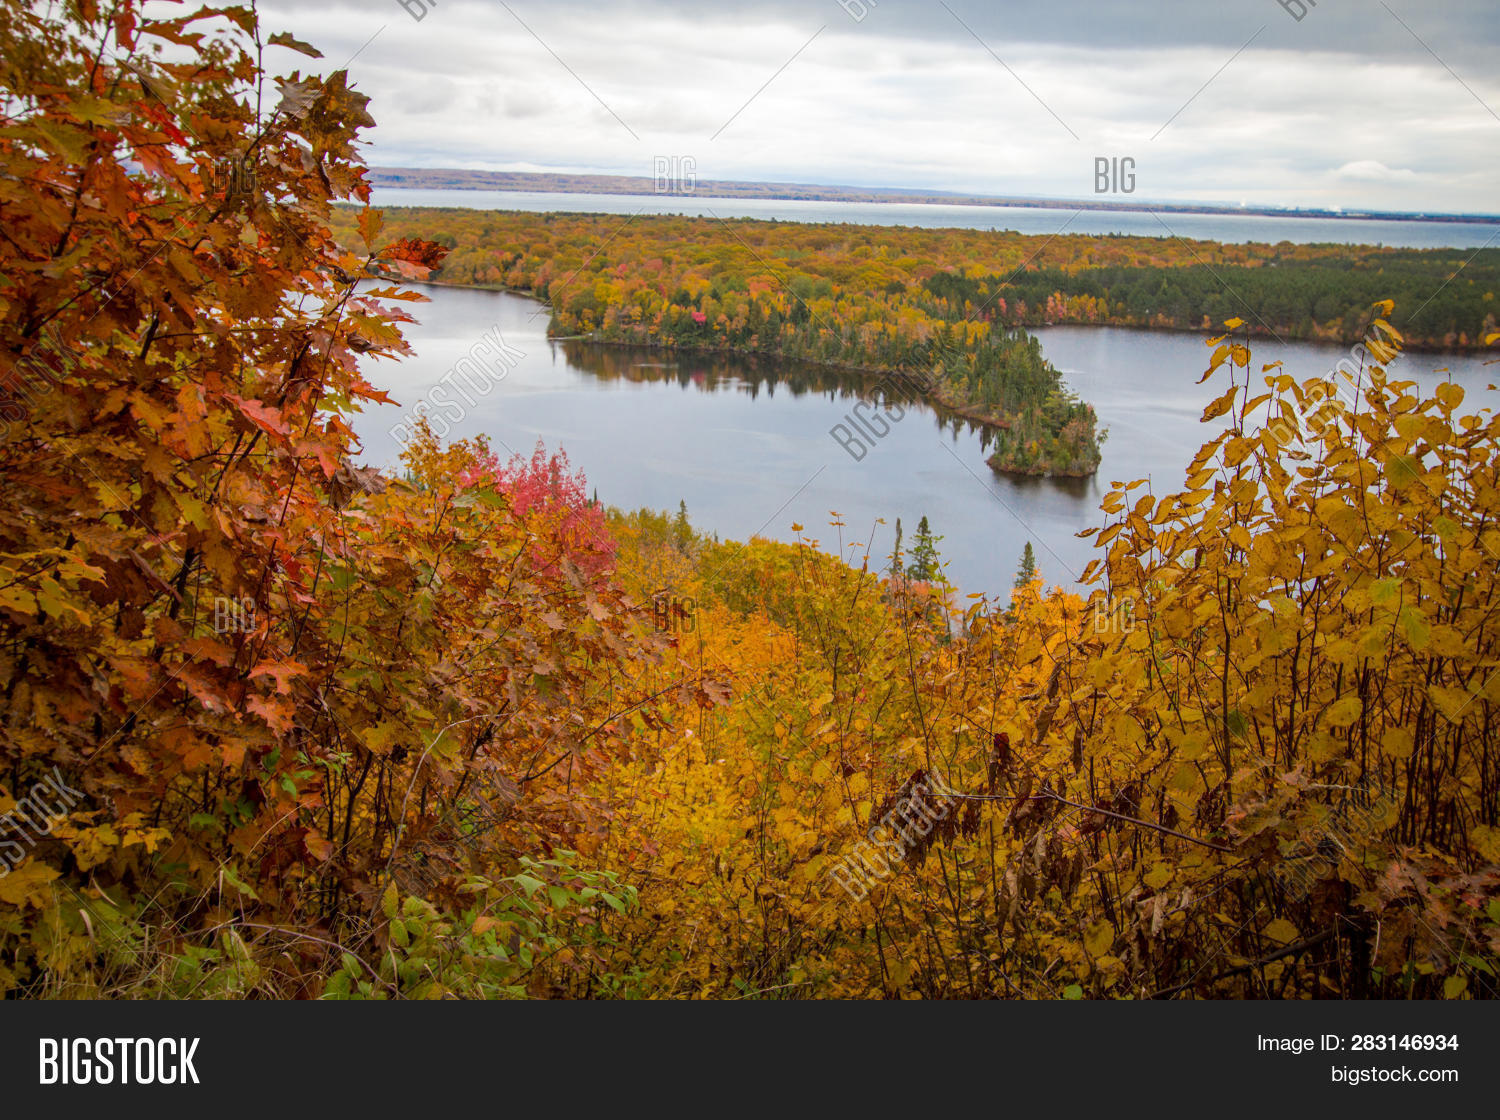 above,afternoon,angle,autumn,backgrounds,beautiful,blue,brimley,chippewa,county,destinations,fall,foliage,forest,from,great,high,horizontal,inland,lake,landscape,michigan,midwest,nature,north,northern,october,outdoors,overlook,panorama,panoramic,peninsula,scenery,scenic,serene,shot,sightseeing,state,superior,tourism,travel,trees,upper,usa,vast,view,water,wilderness,woods